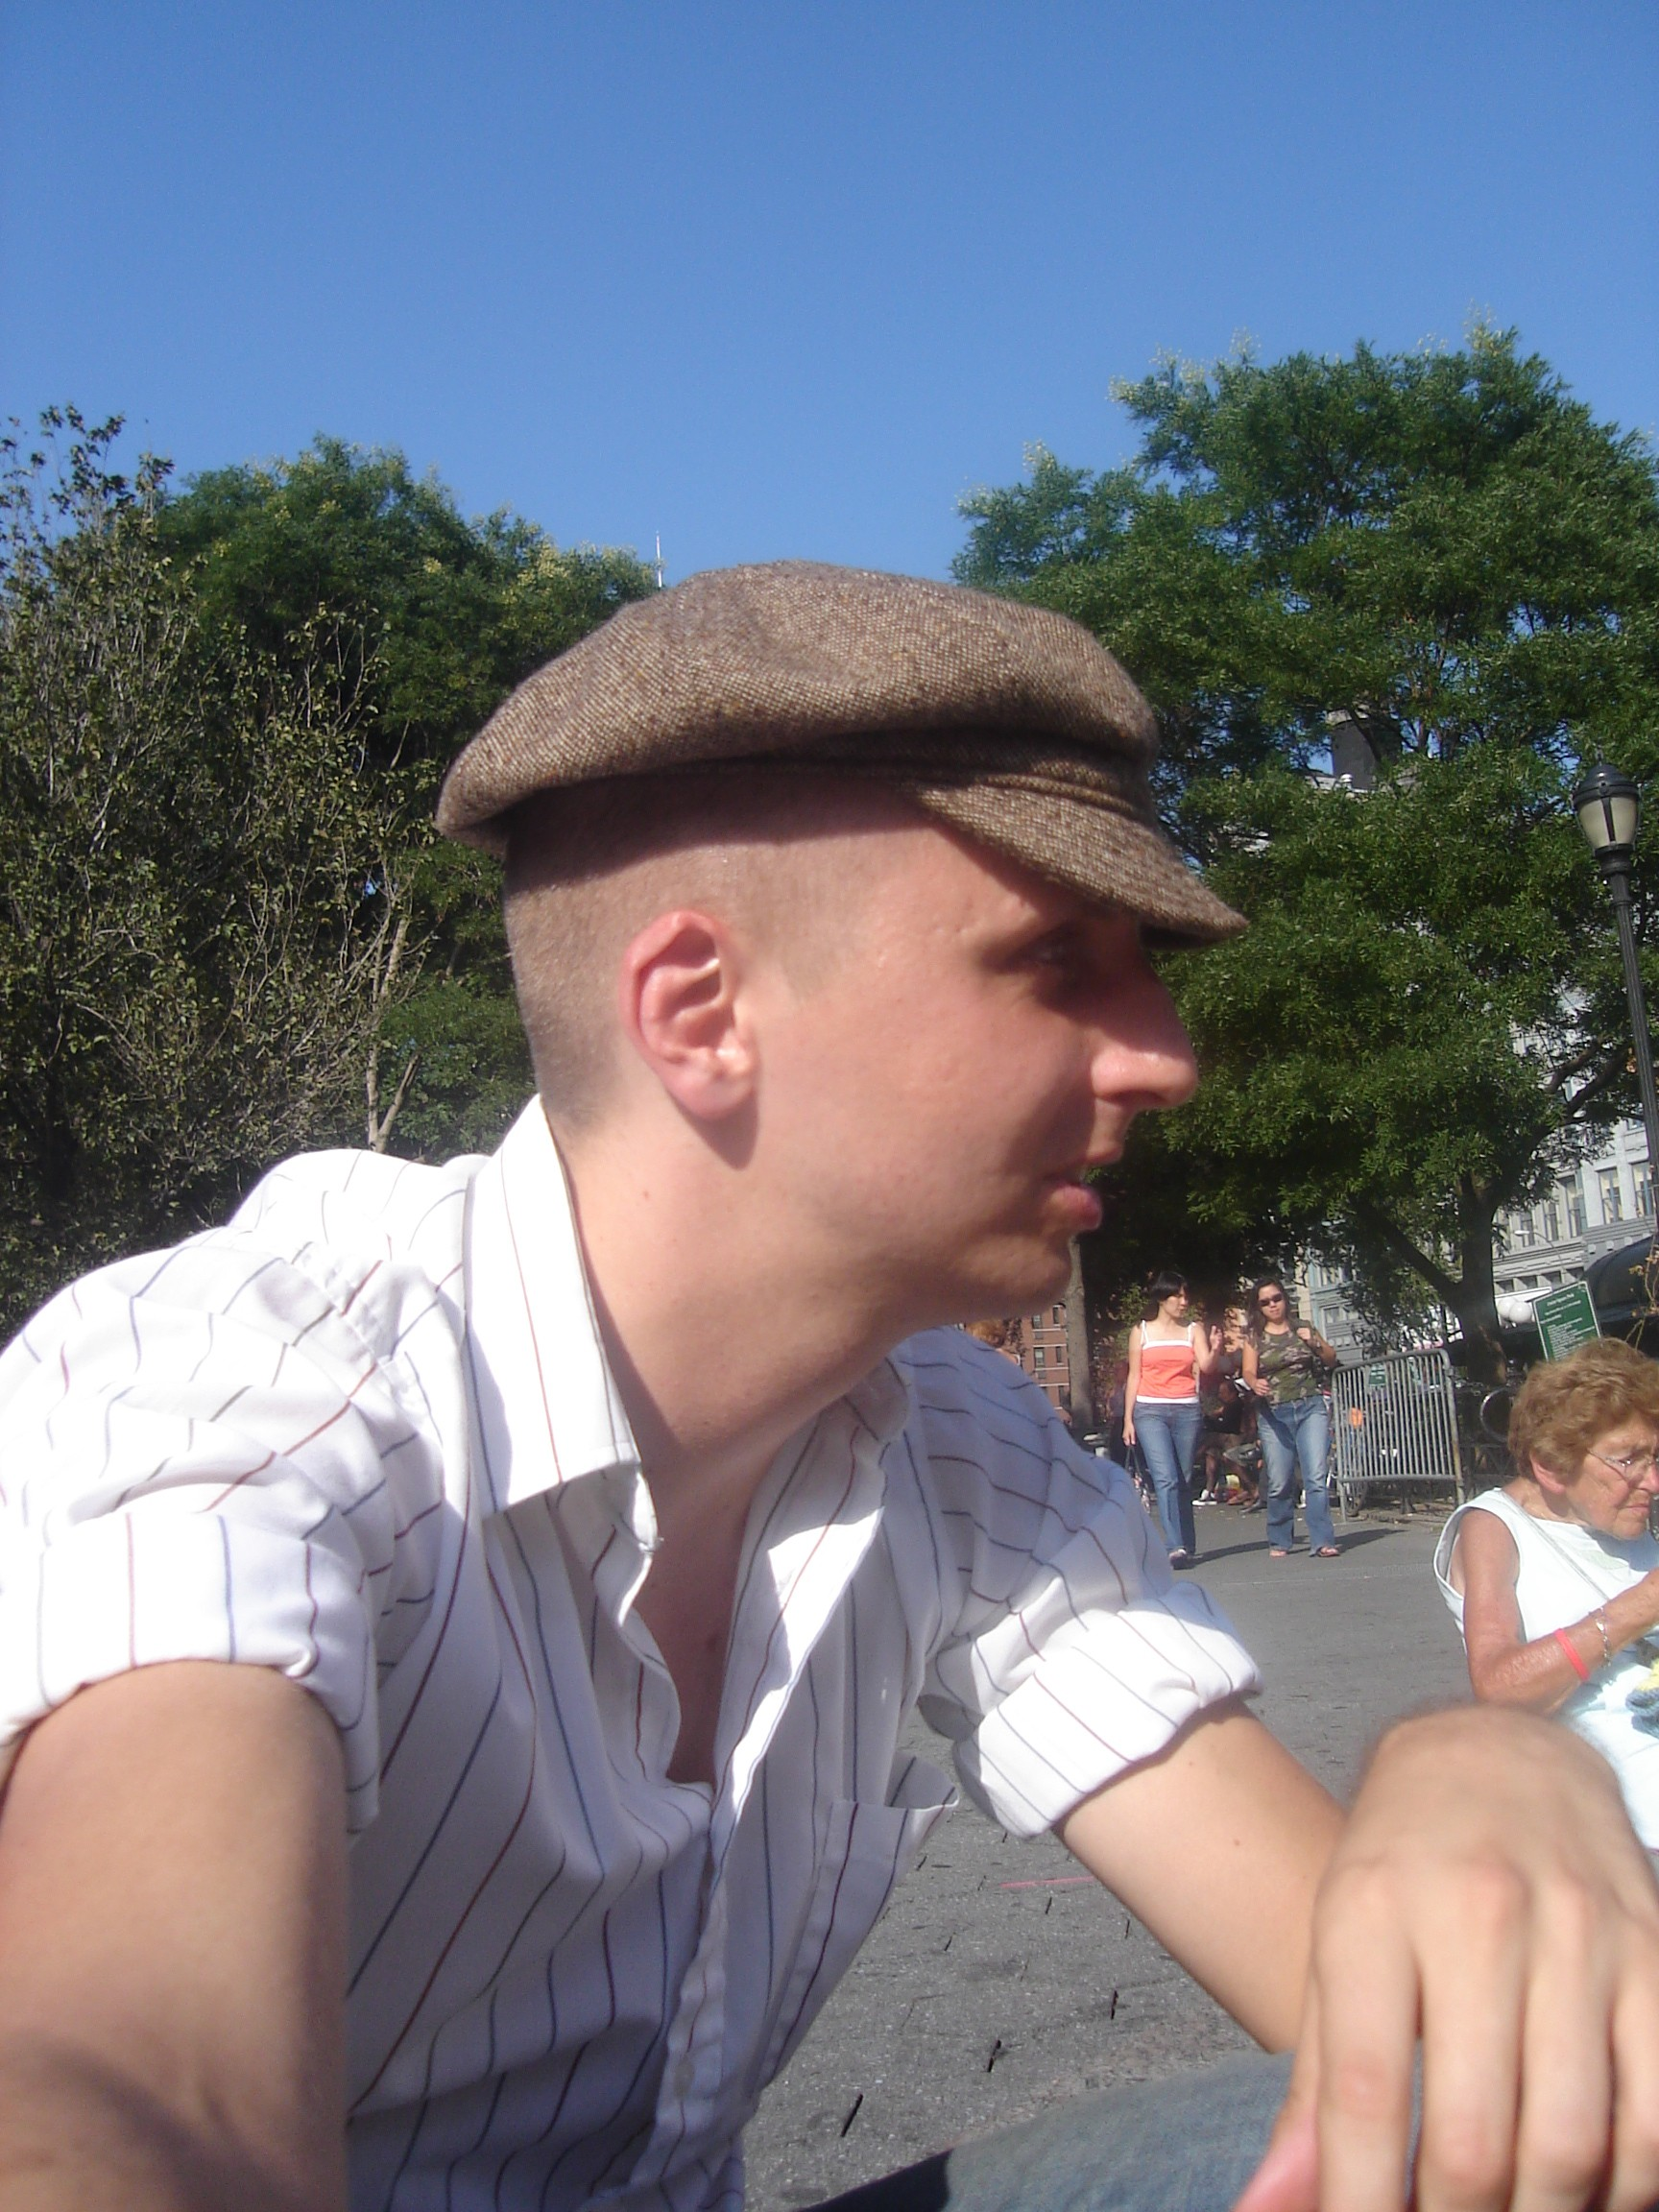 Normal Bob in Hat Profile